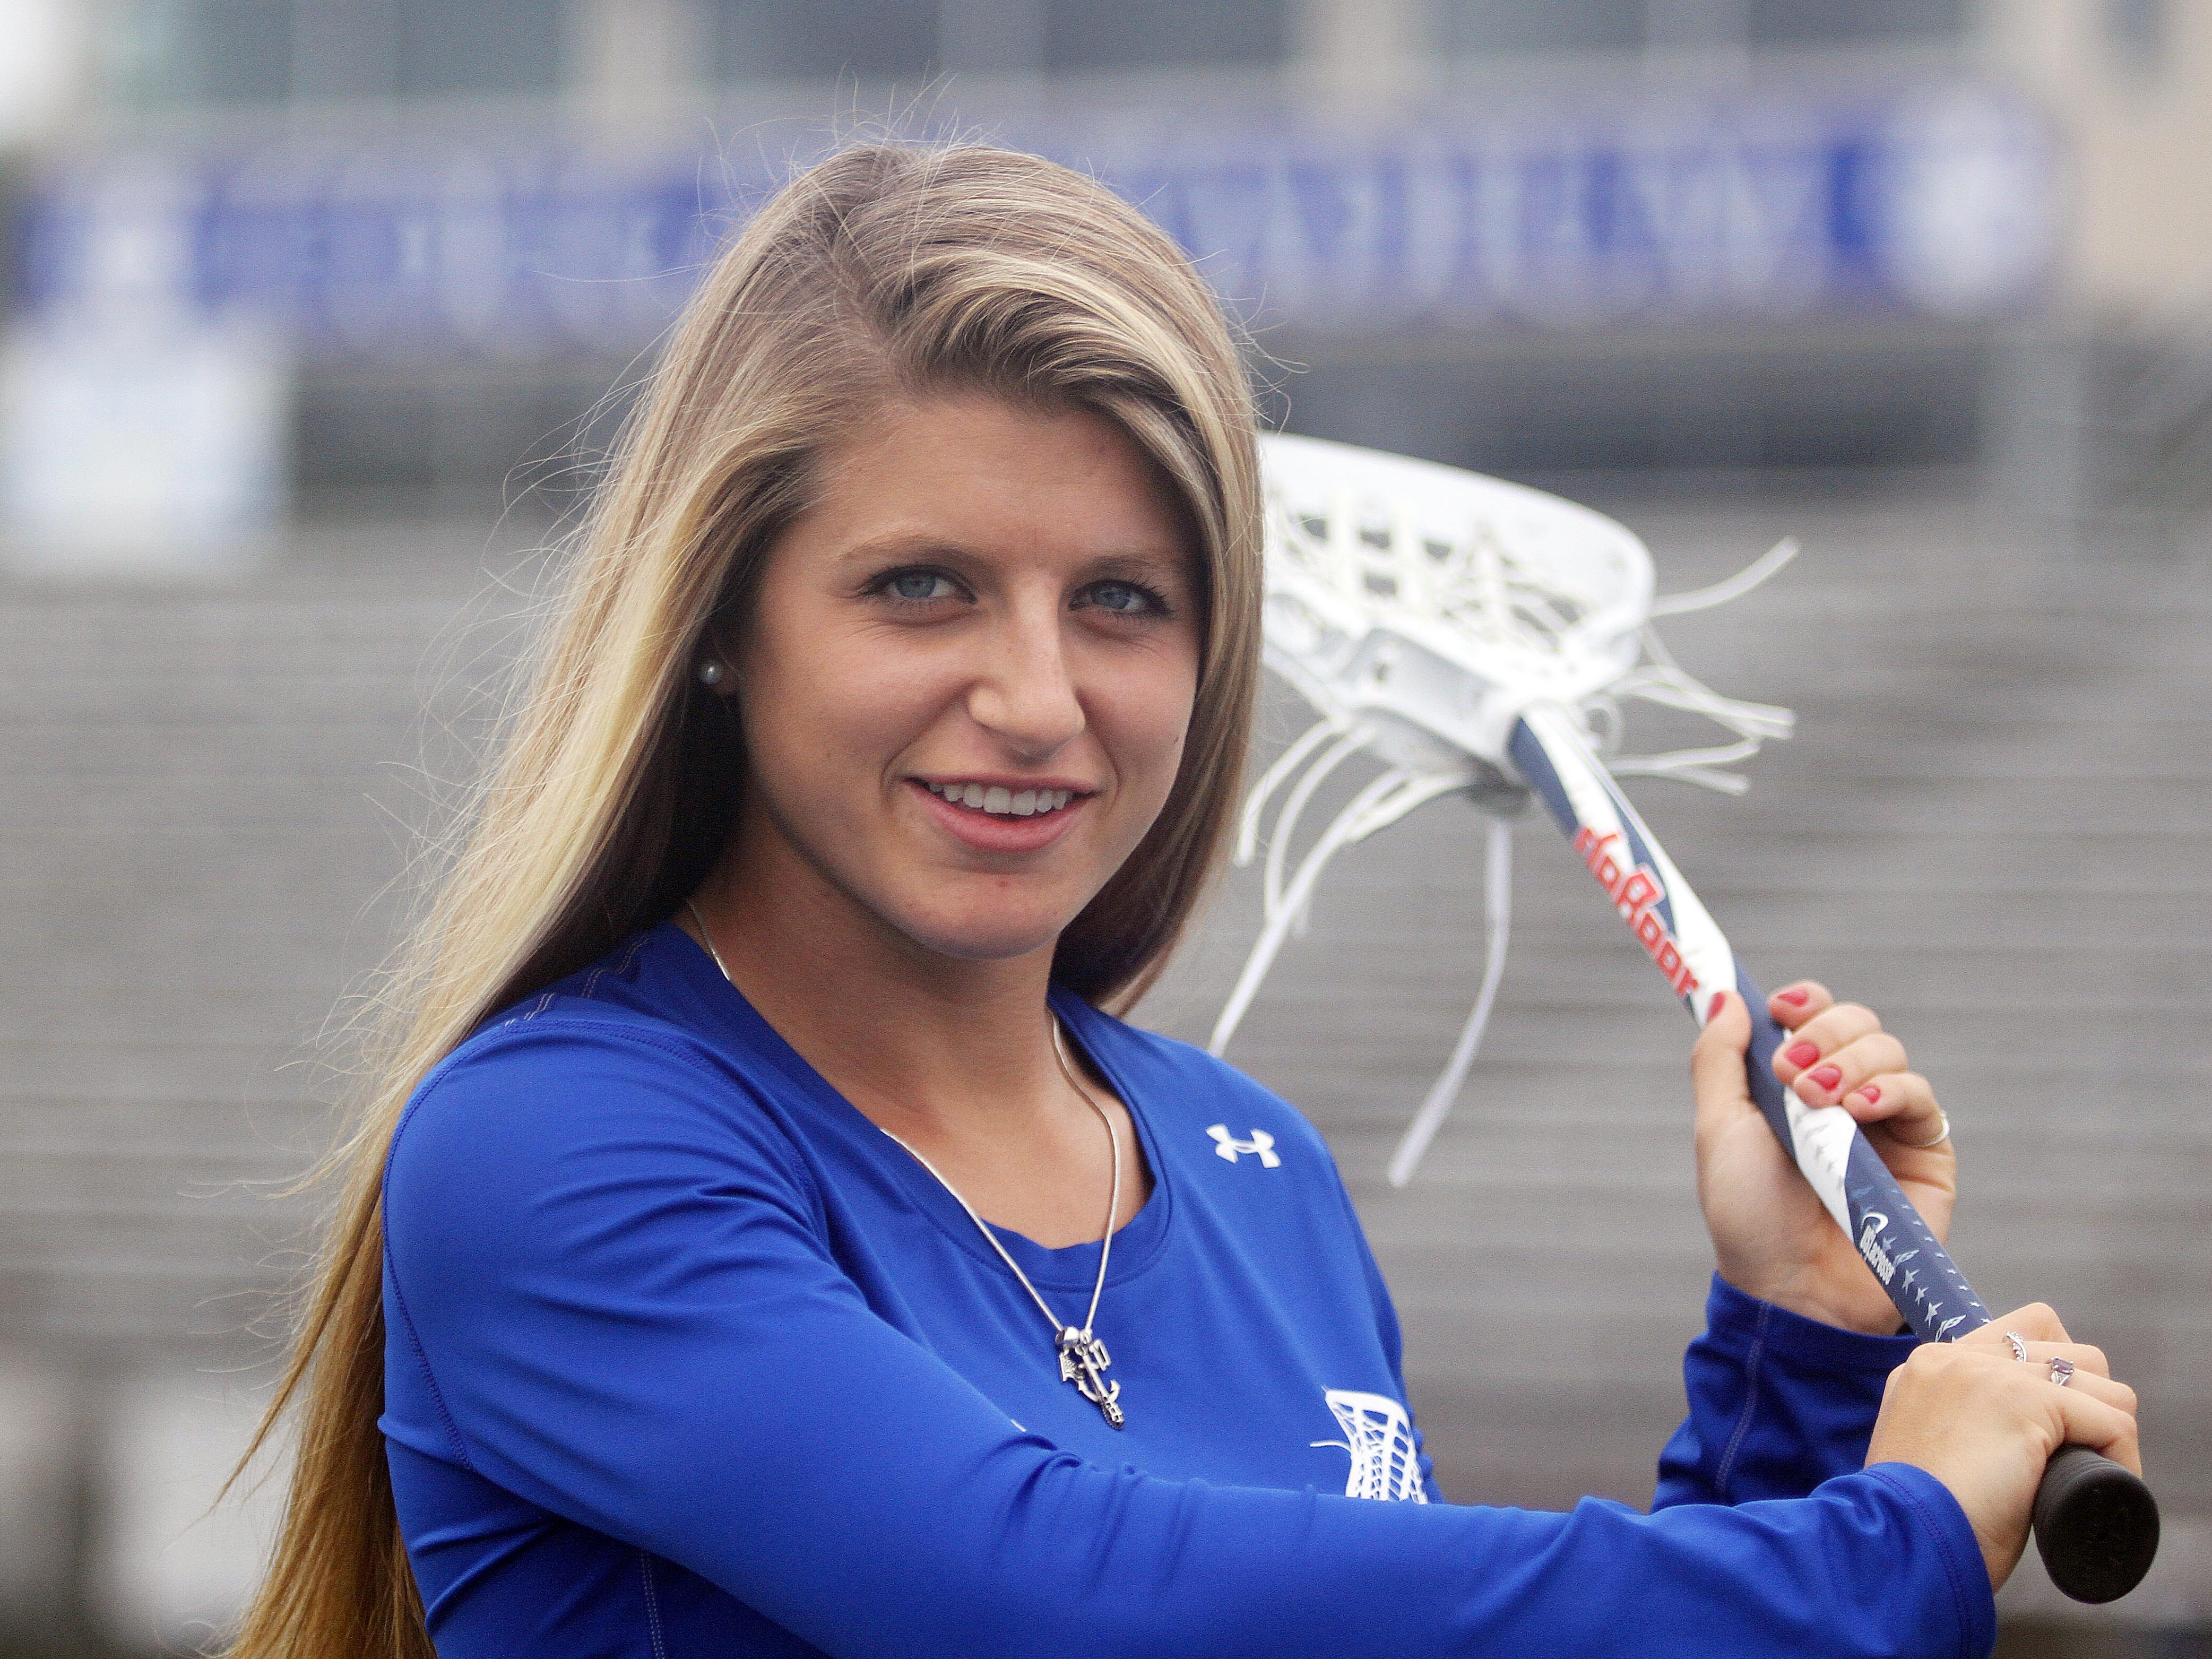 Olivia Ferrucci,18, is a star middle fielder on the Barron Collier High School girls' lacrosse team, A senior, she is headed to the UnIversity of North Carolina and has been named to the 25-player training pool with the U-19 women's national team.